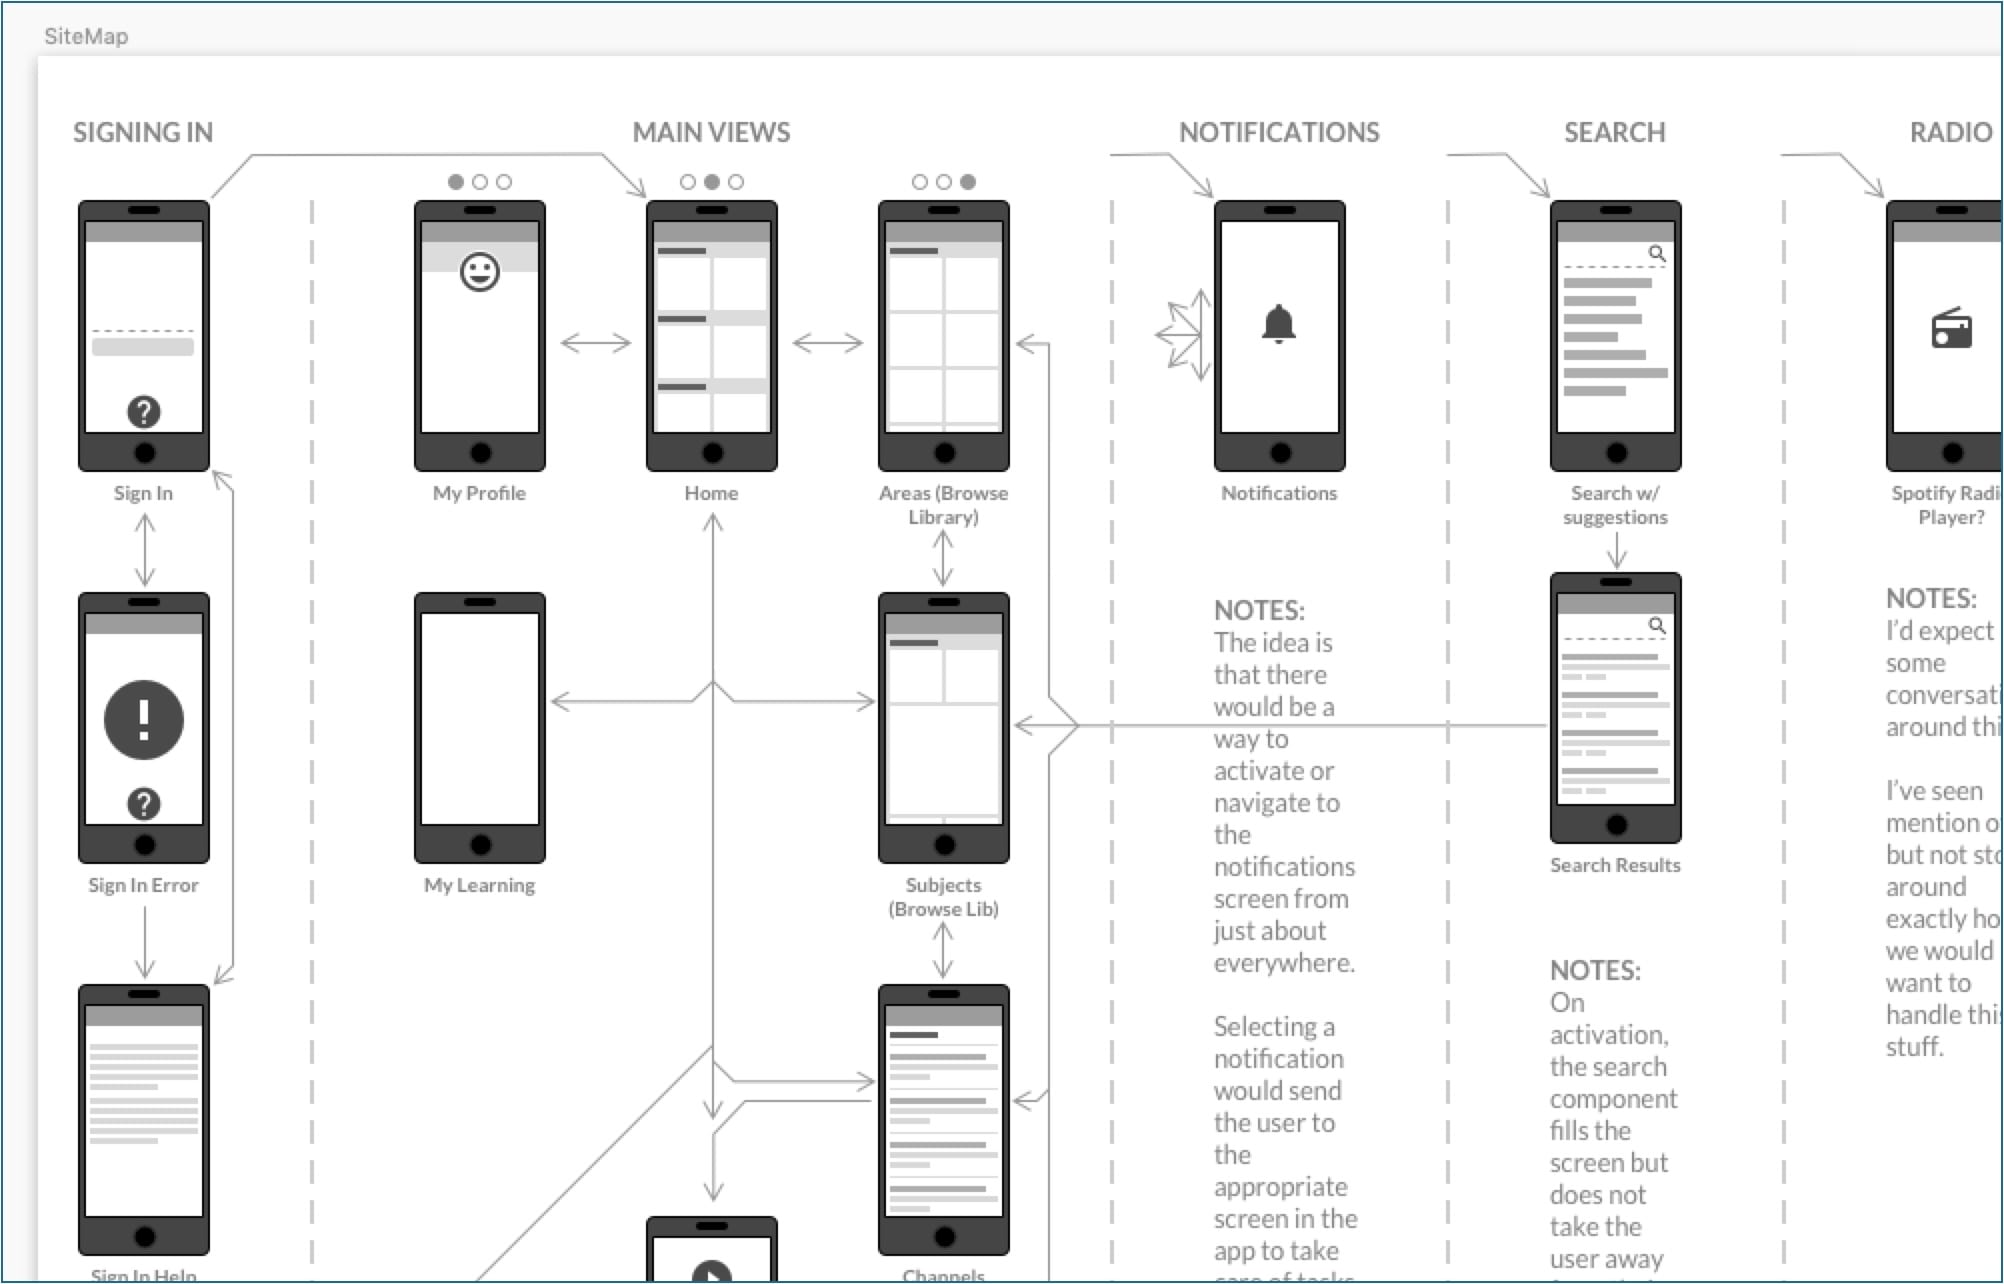 Screen grab of a portion of the initial flow map for the Percipio mobile app.